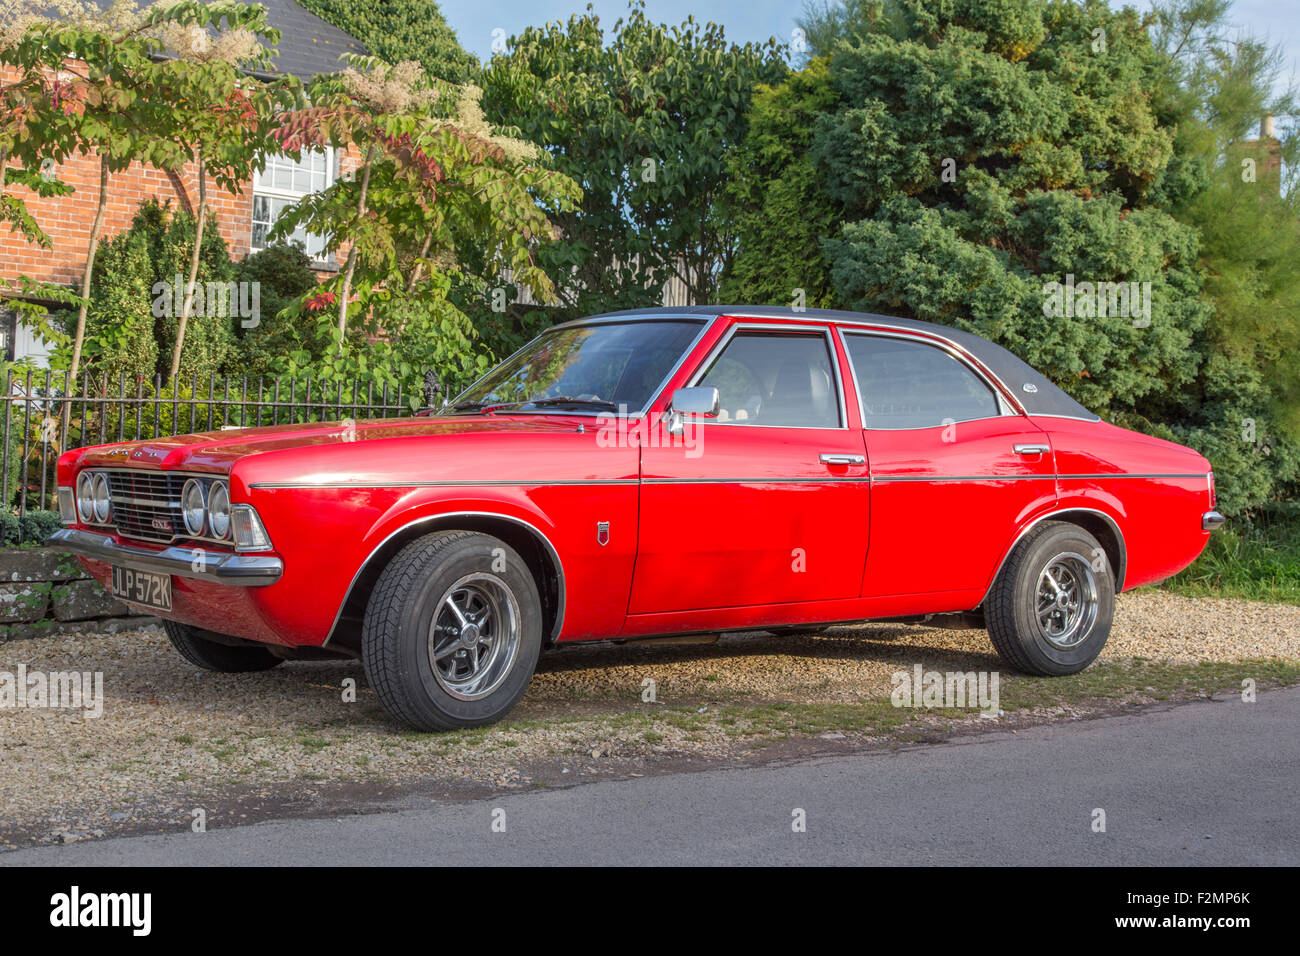 ford cortina stock photos & ford cortina stock images - alamy